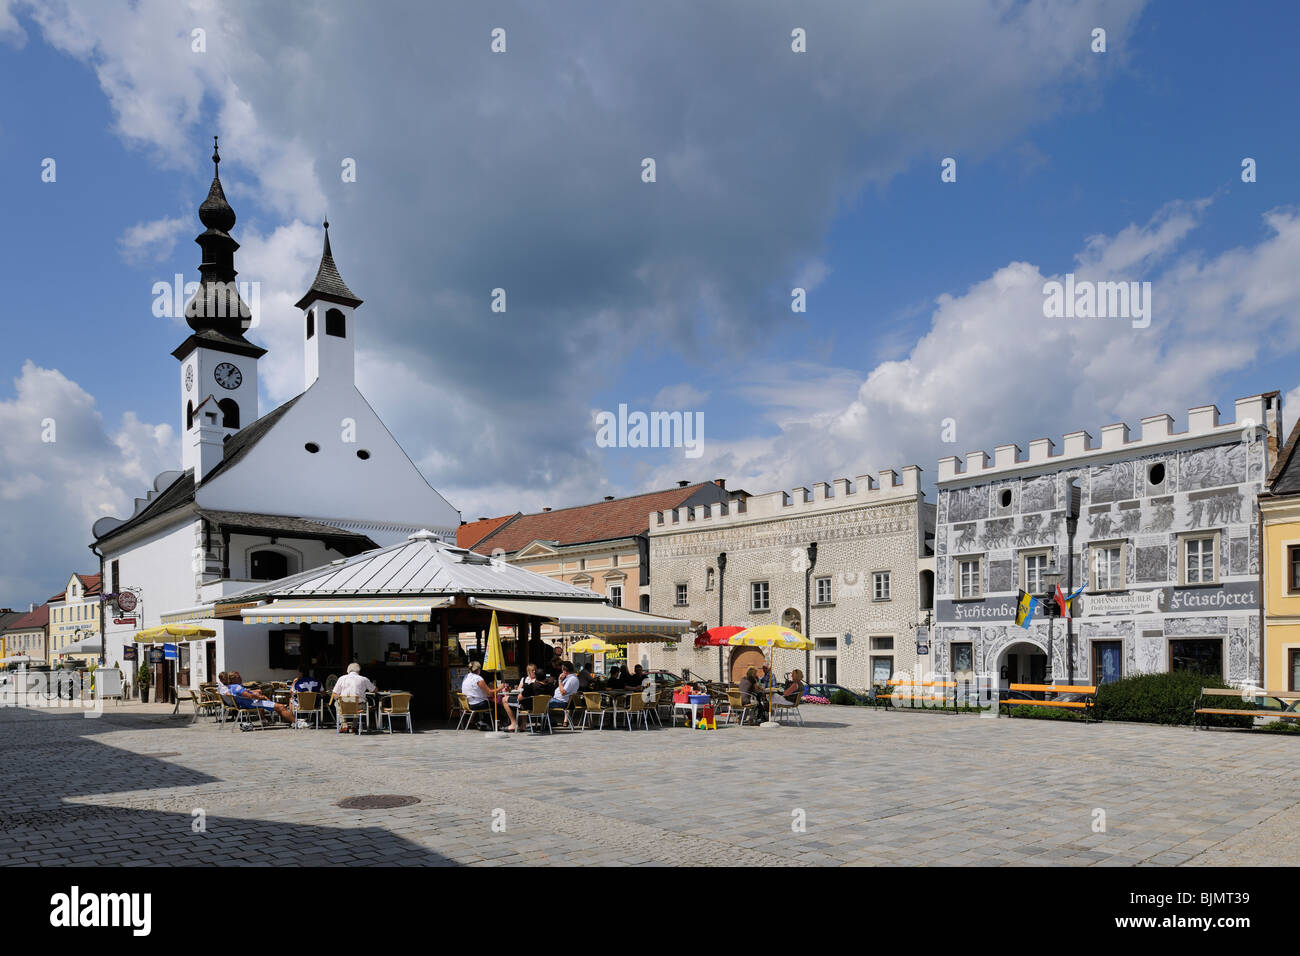 Houses with Sgraffito decorations, ice cafe and Schranne old town hall, main square of Gmuend, Waldviertel region, Stock Photo